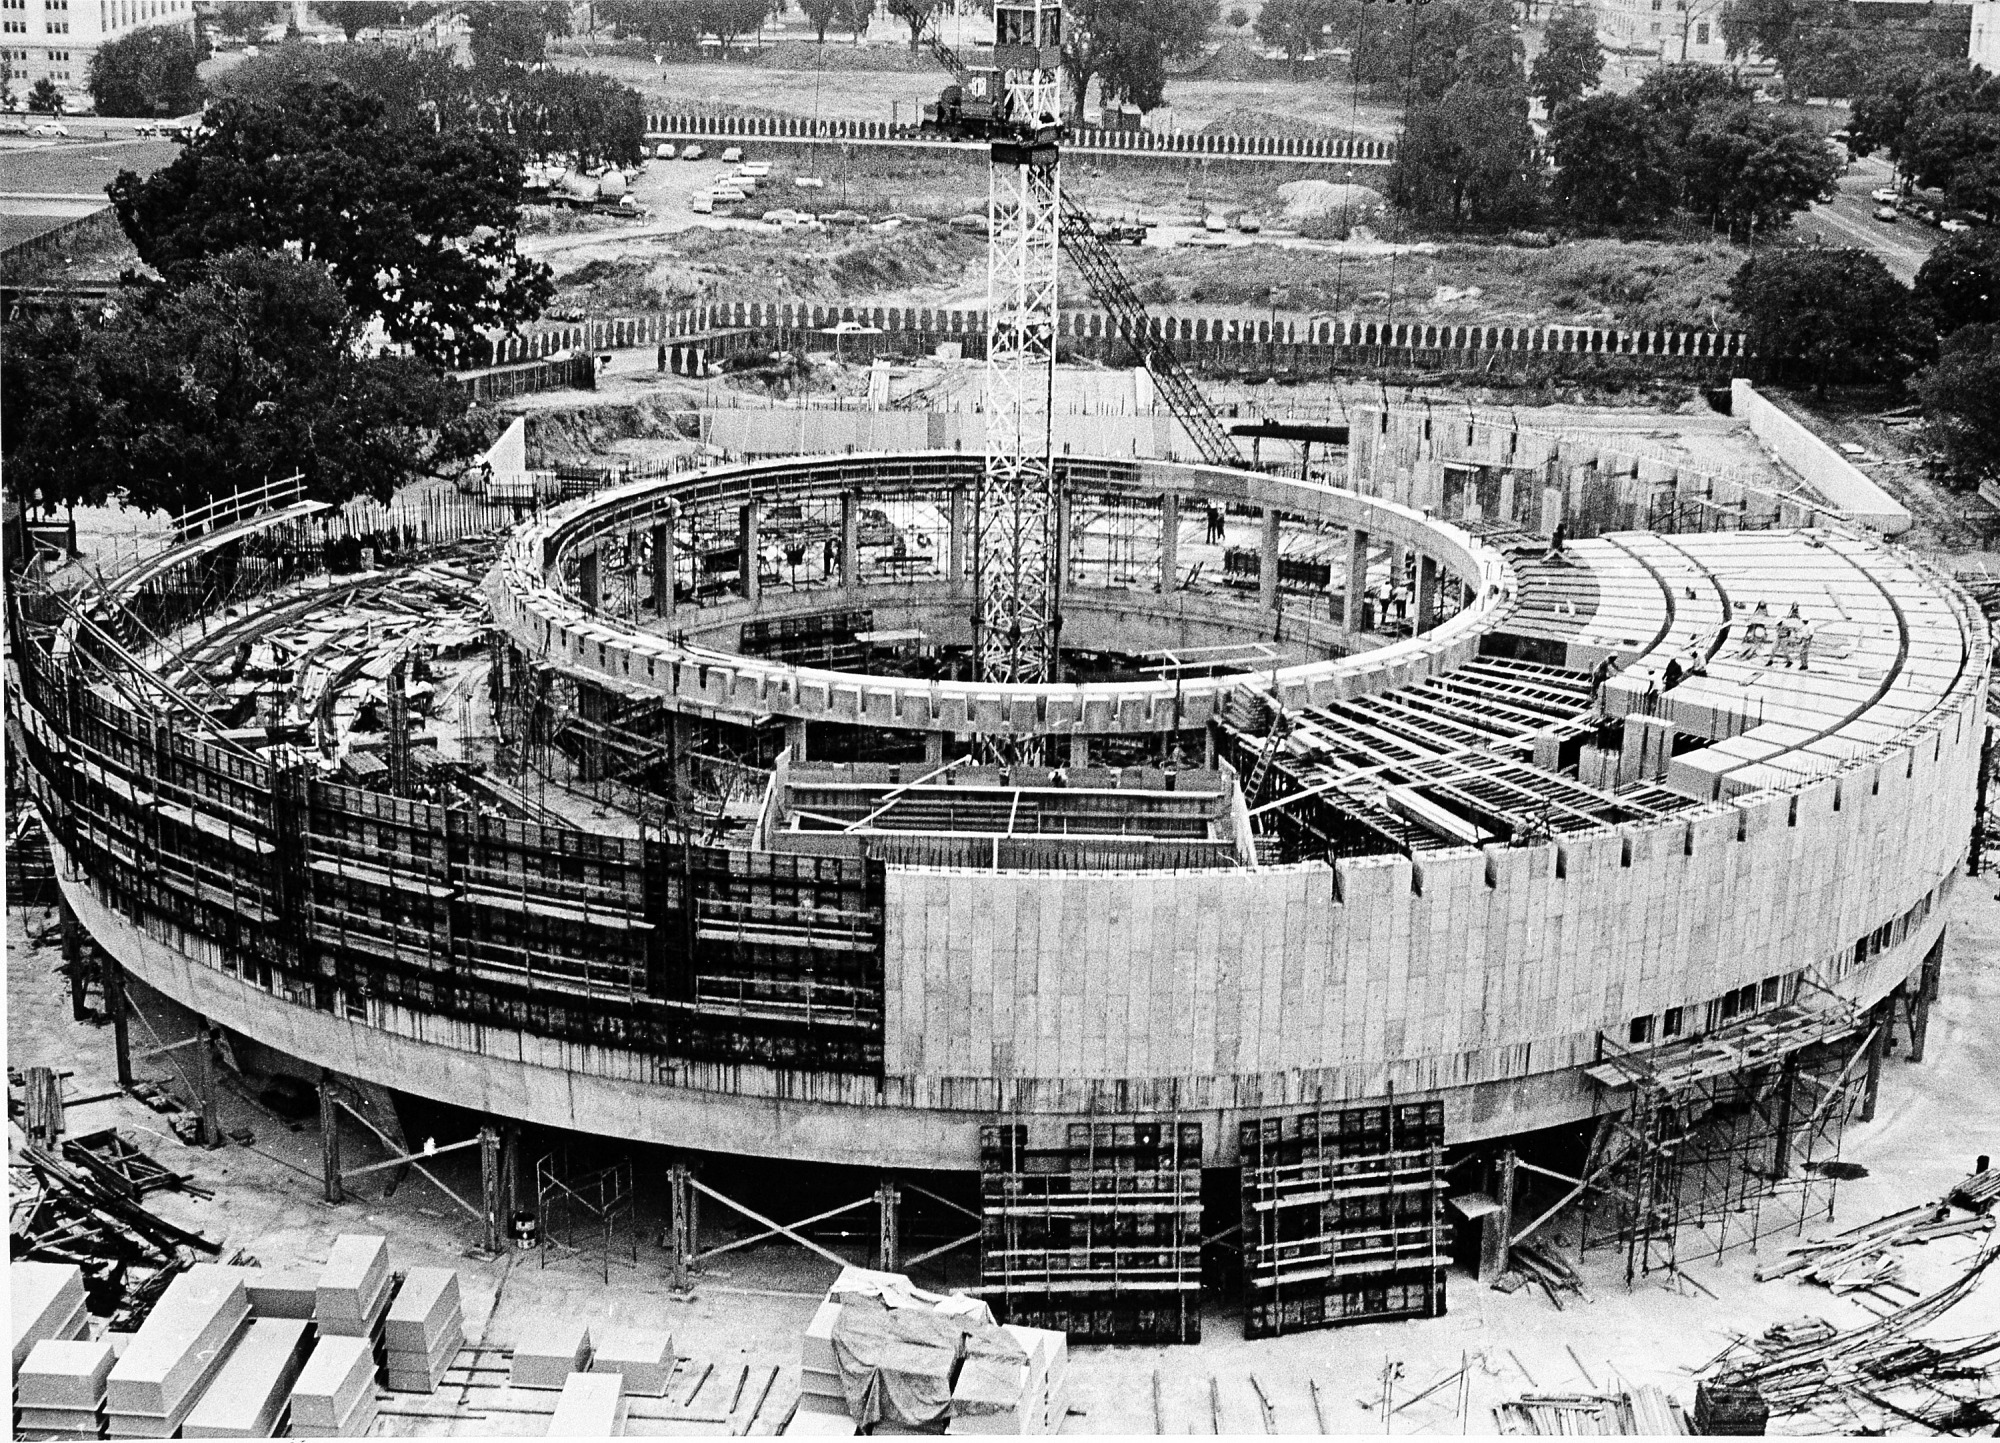 Jul 26 HMSG Under Construction, August 1972